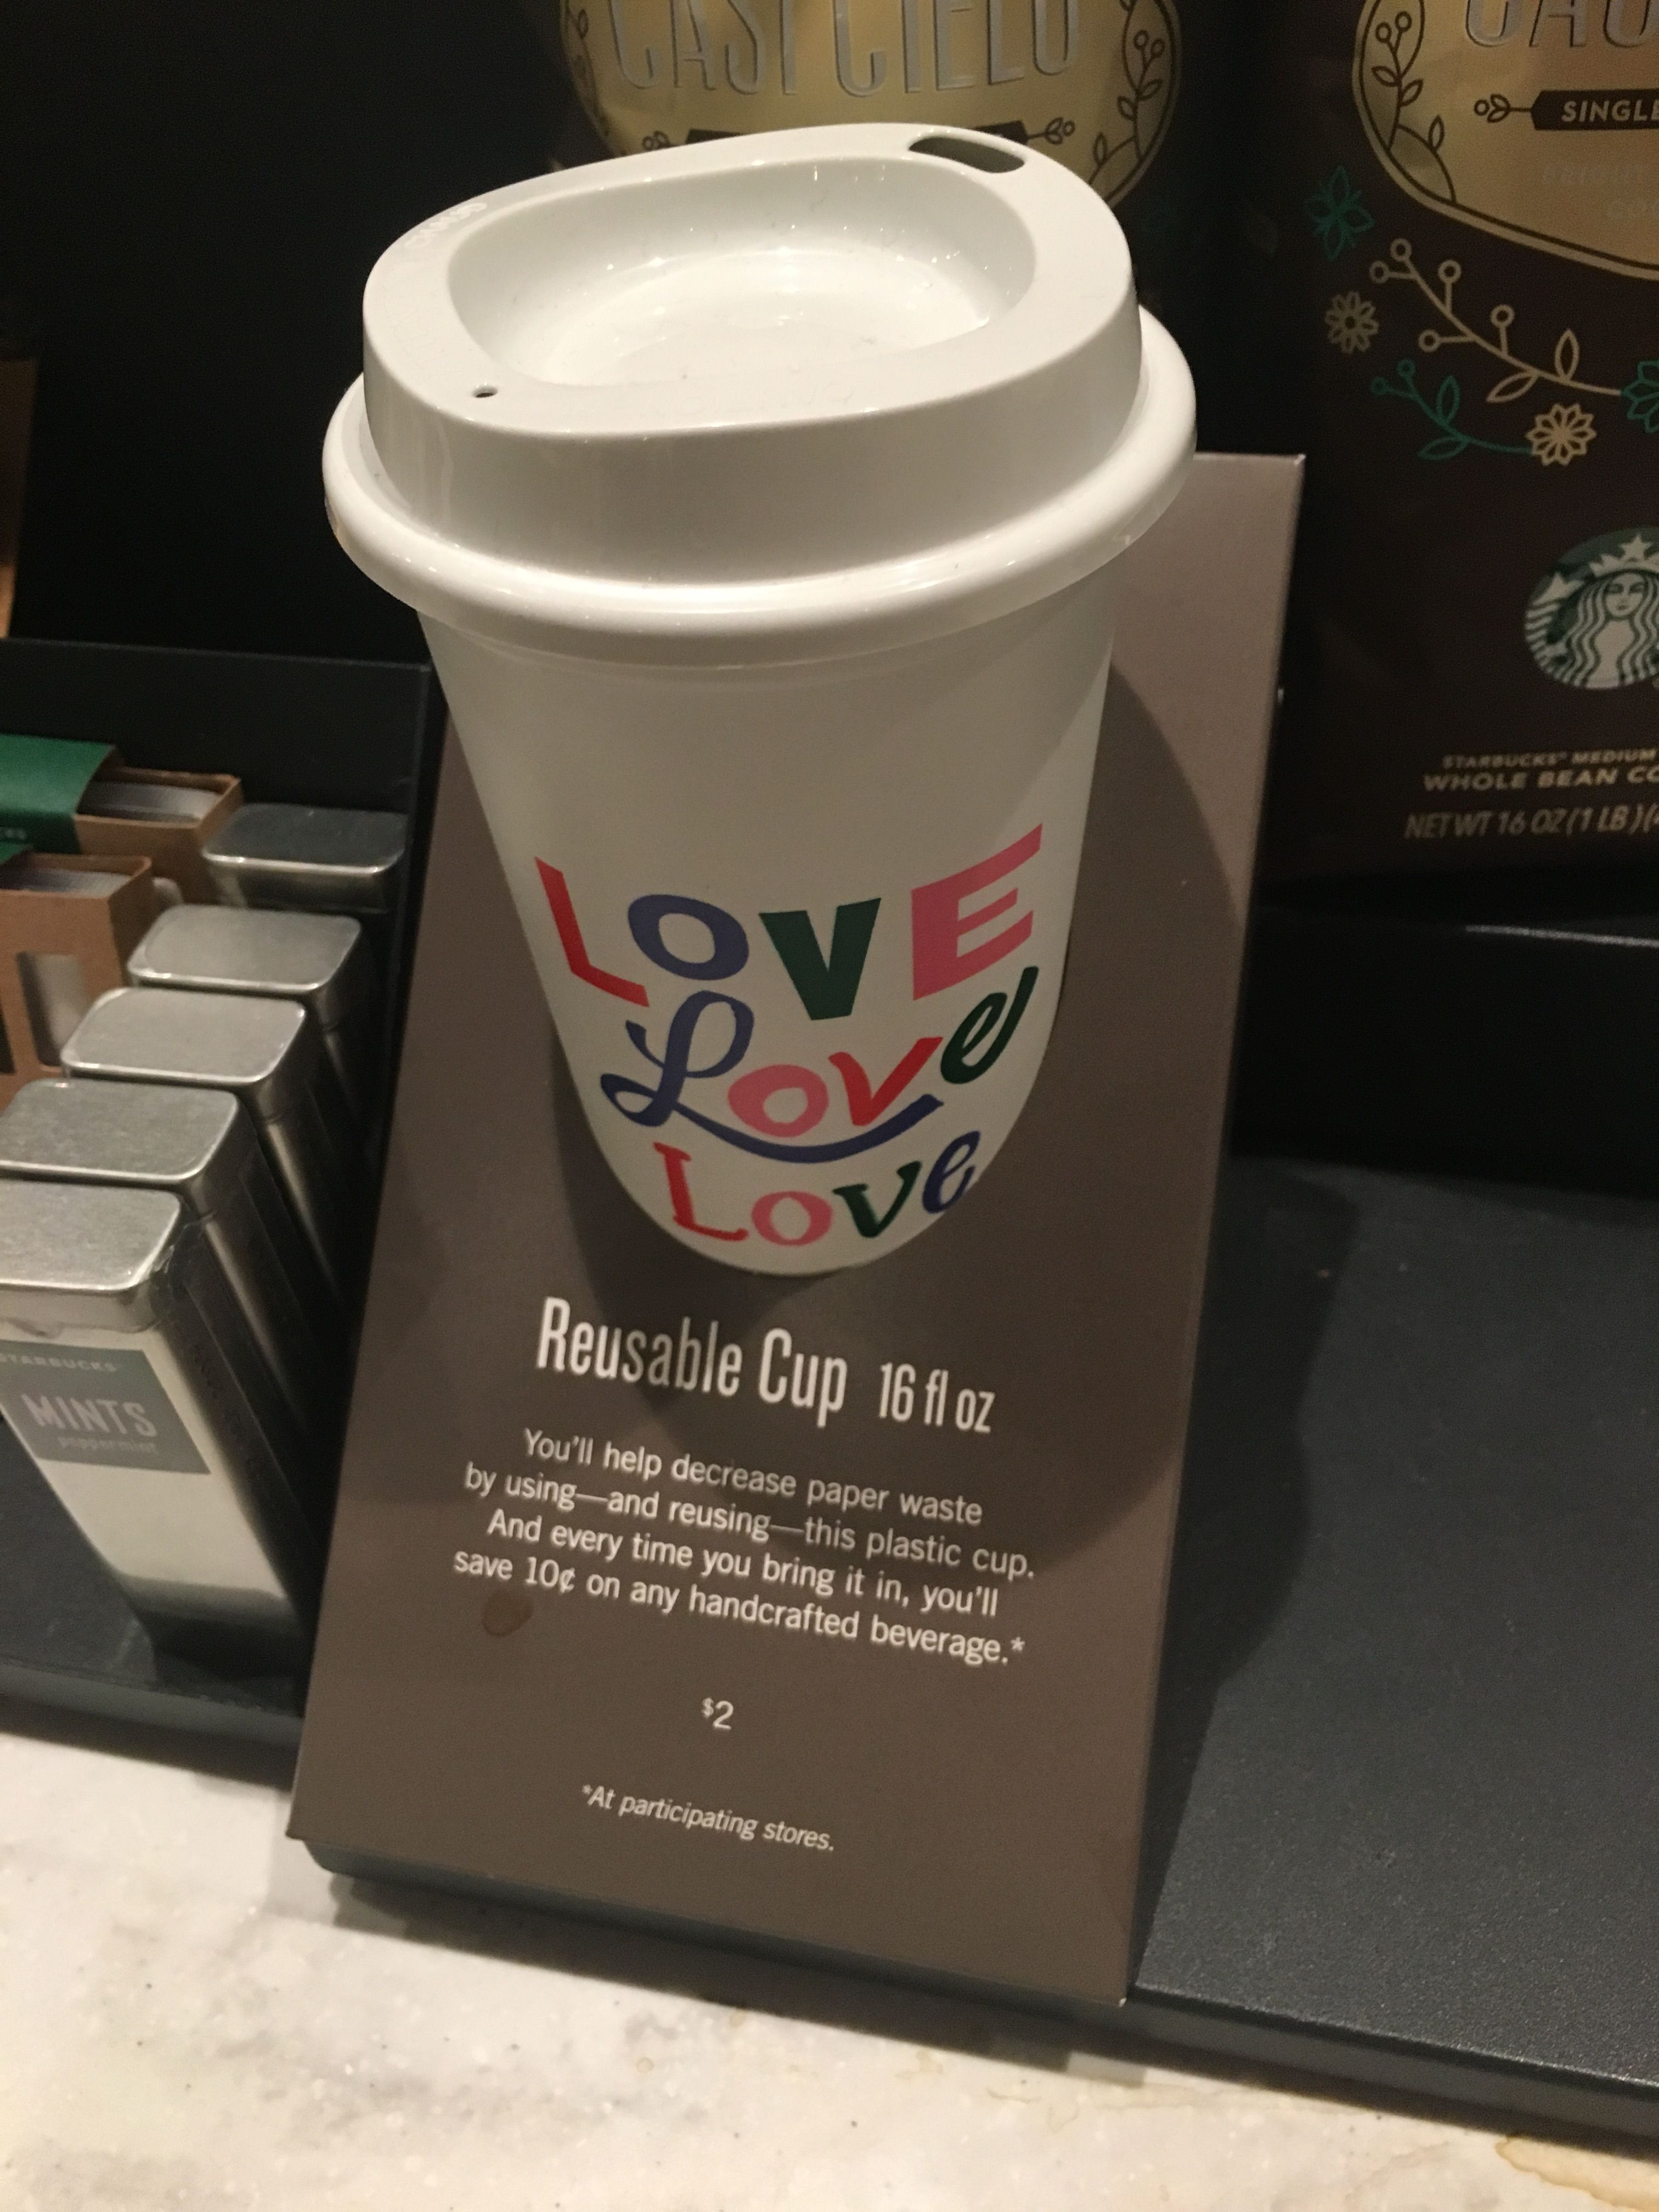 starbucks valentine's day 2018 reusable cup 16 fl oz